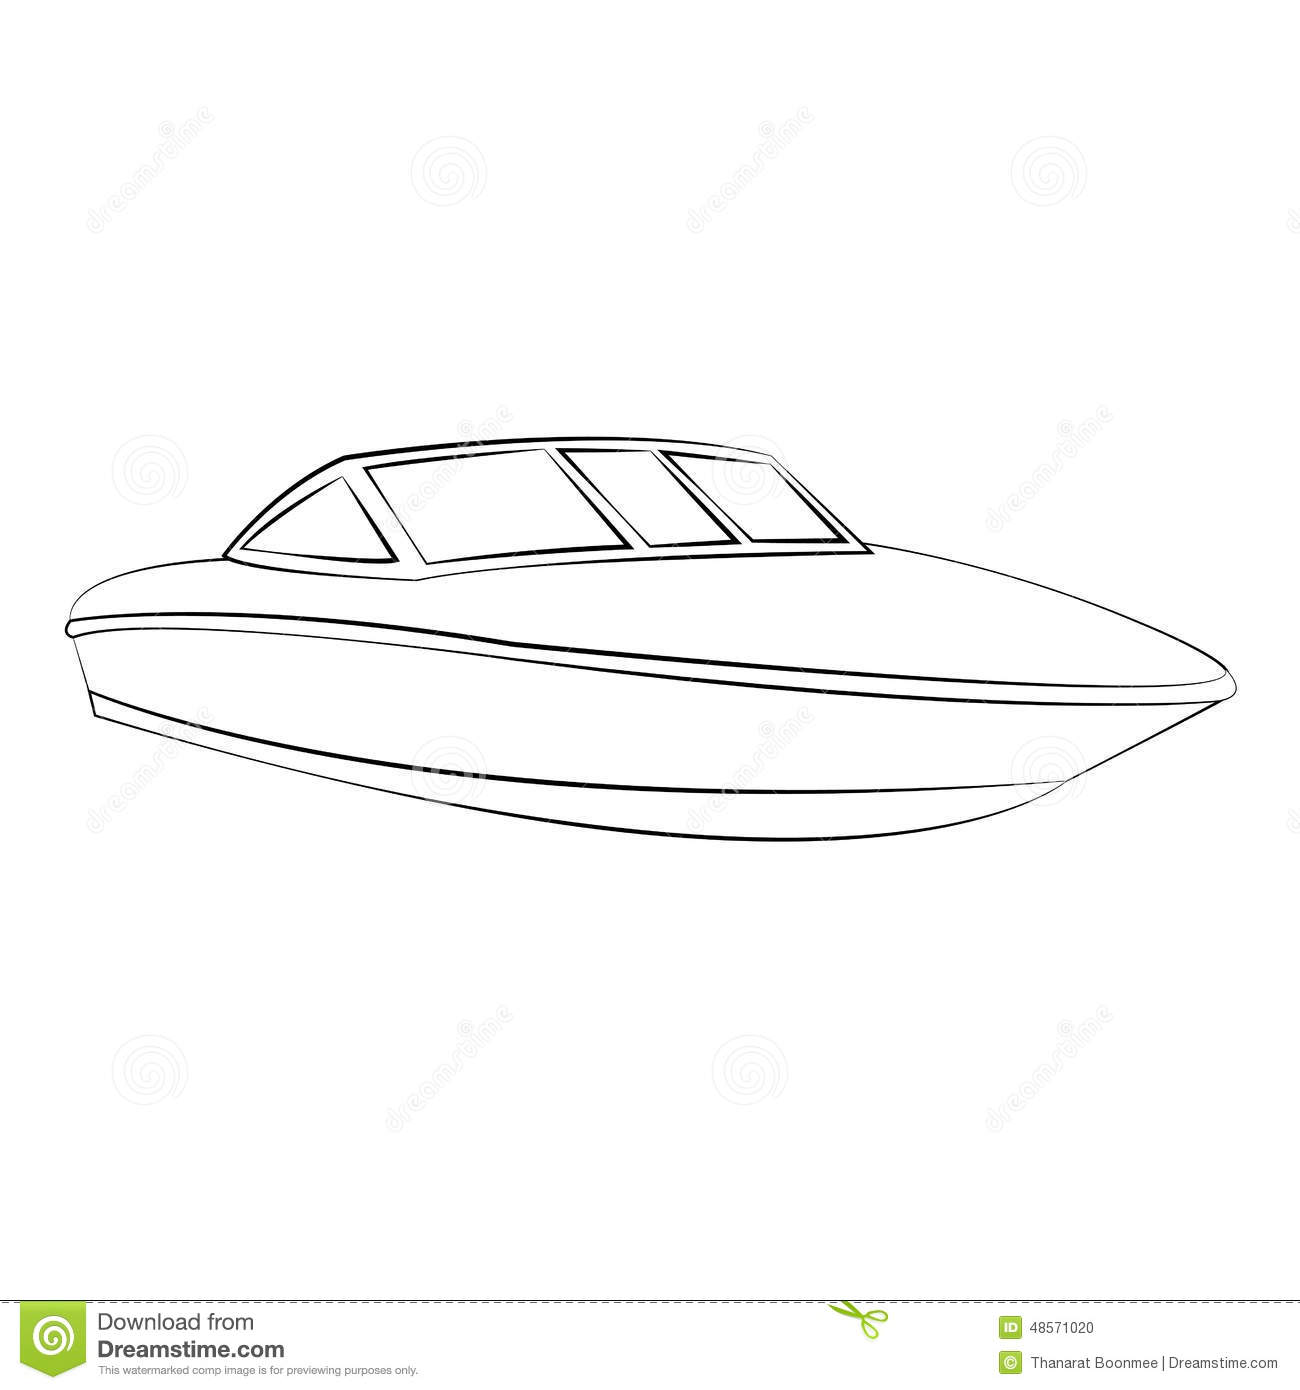 Boat Stock Vector Illustration Of Illustration Black